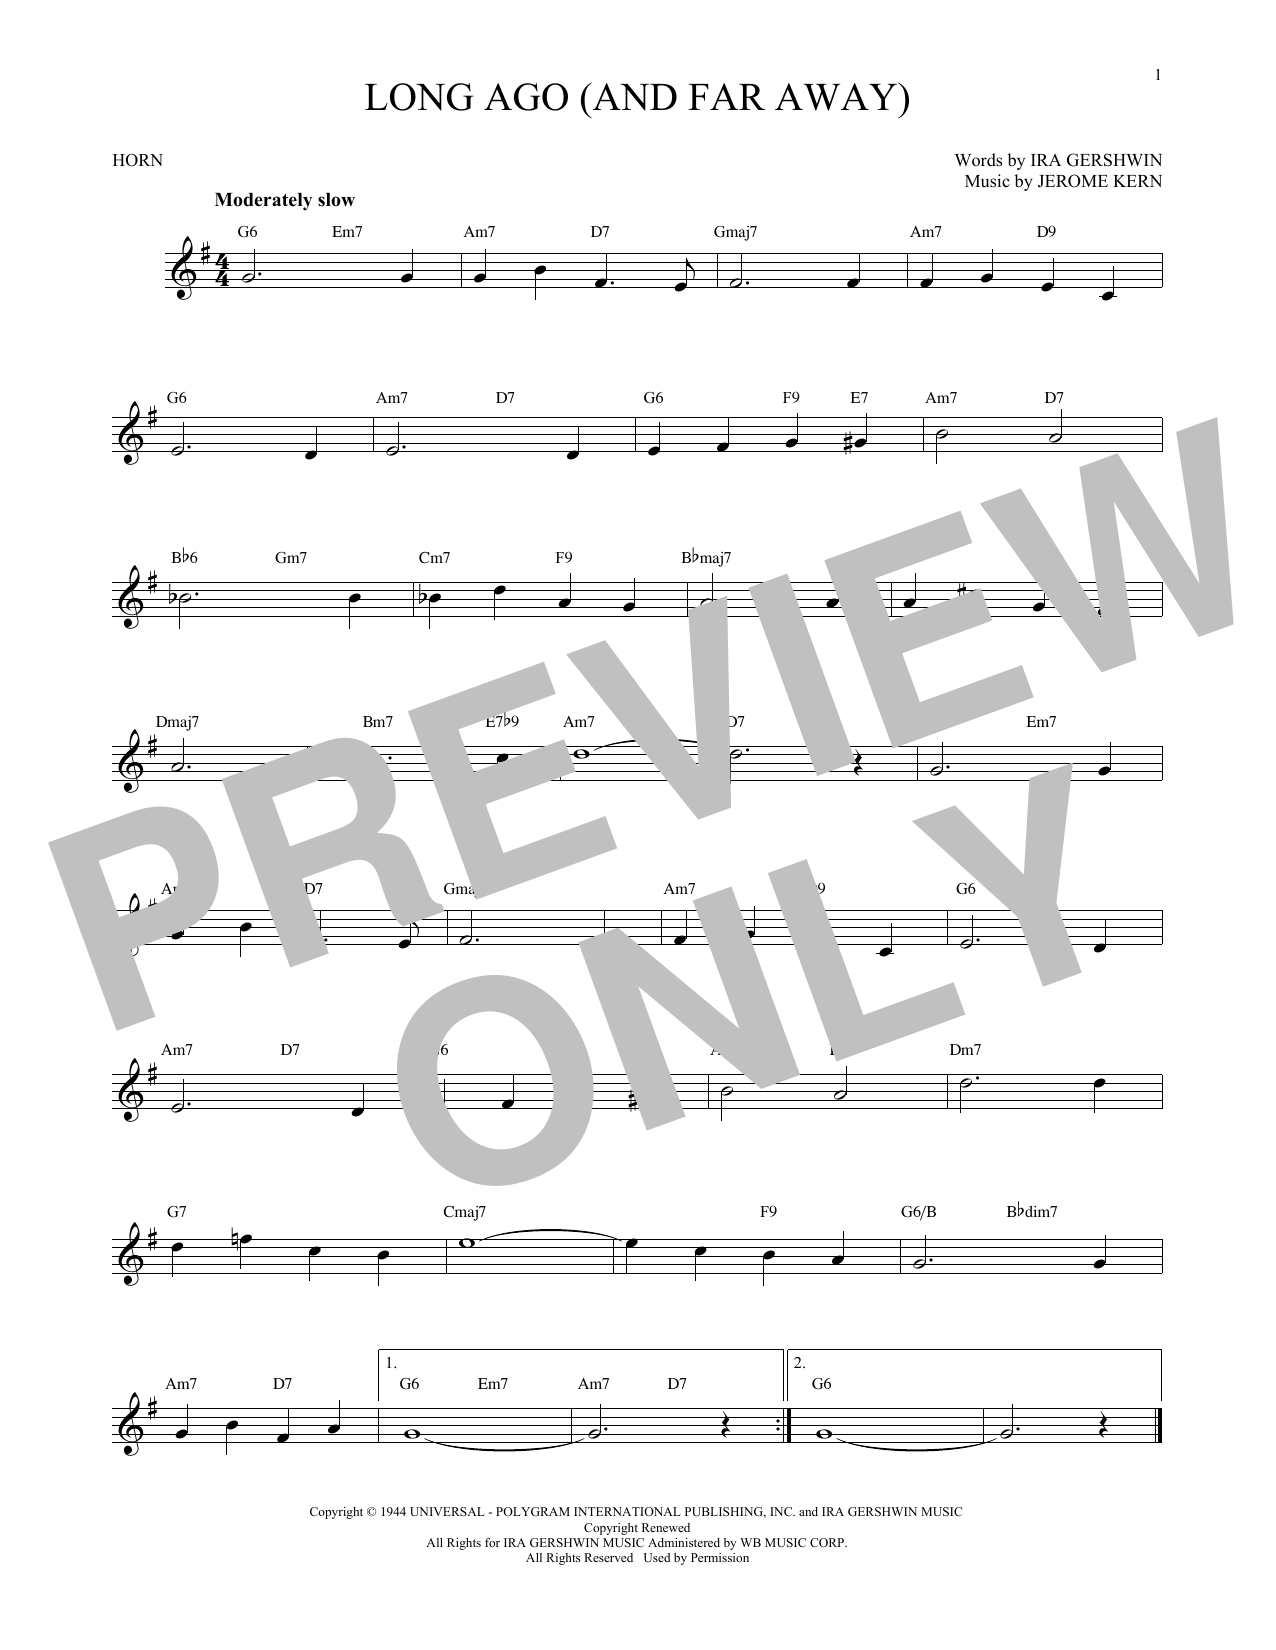 Long Ago (And Far Away) (French Horn Solo)